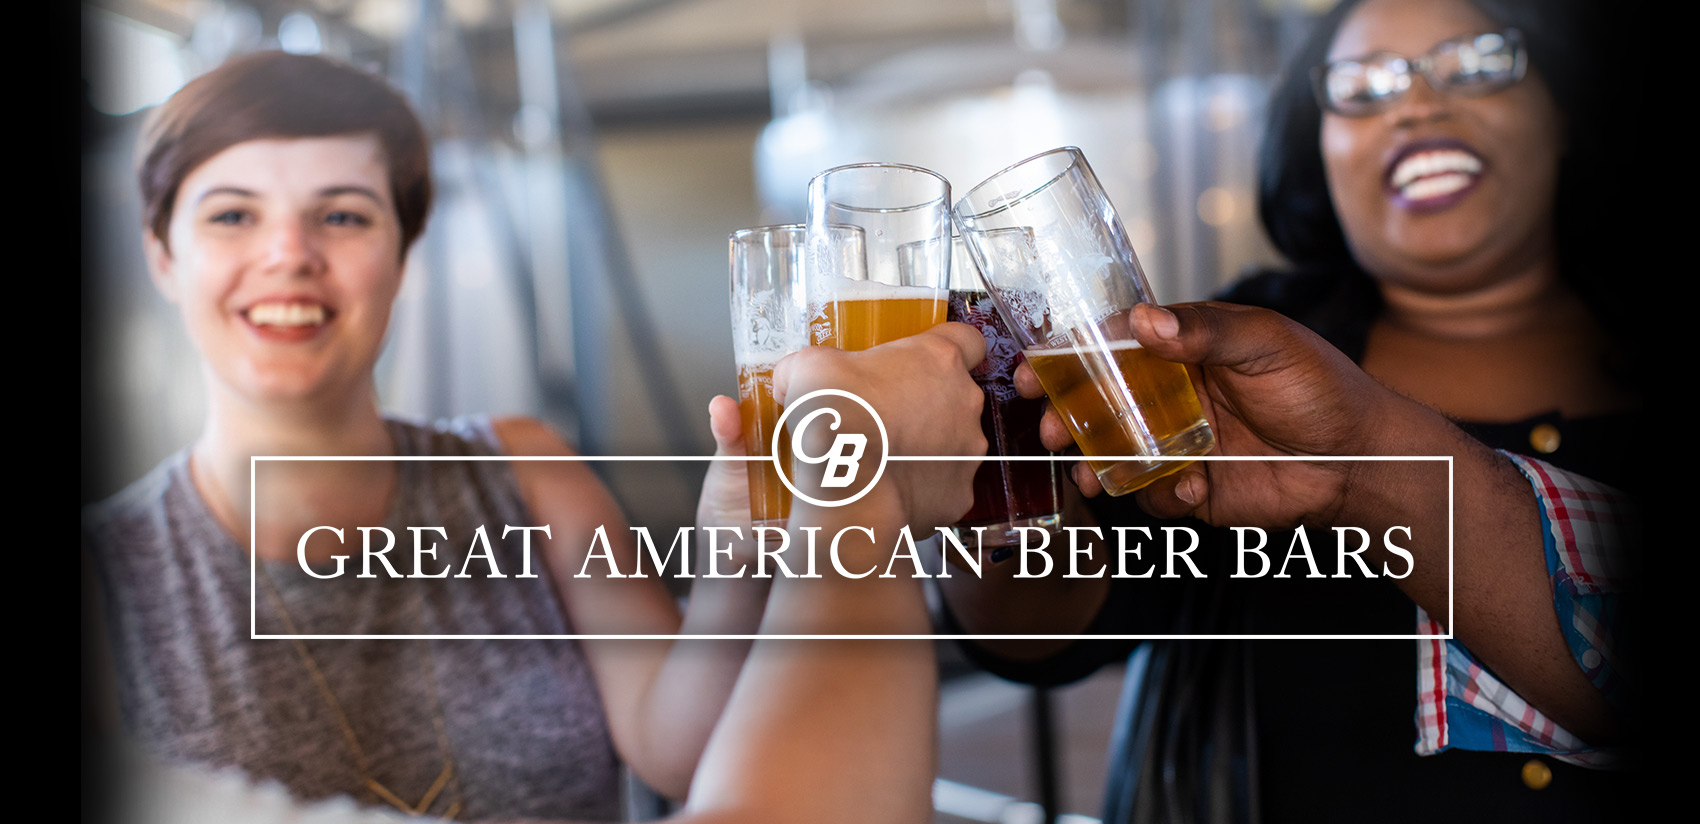 Great American Beer Bars 2020